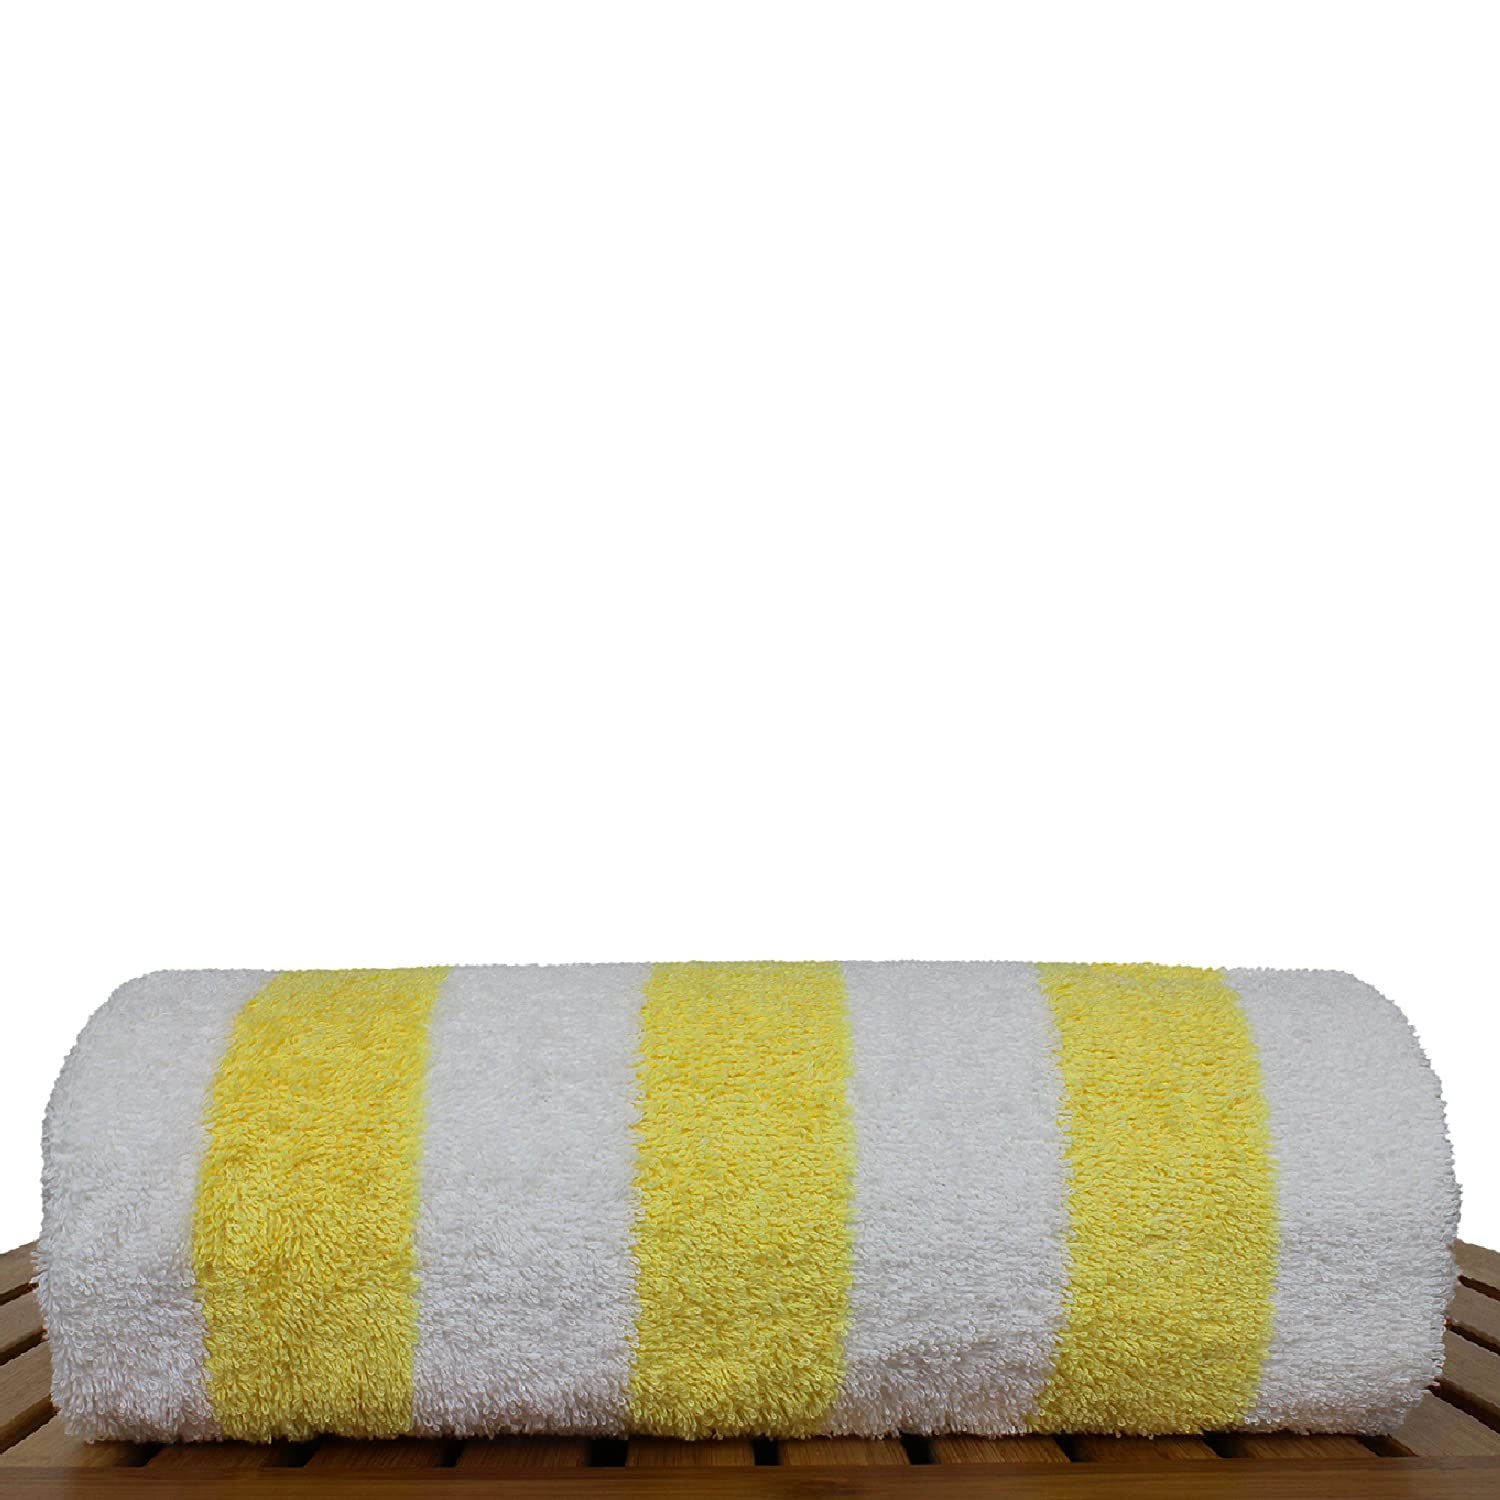 BC BARE COTTON - Luxury Towels Hotel Quality